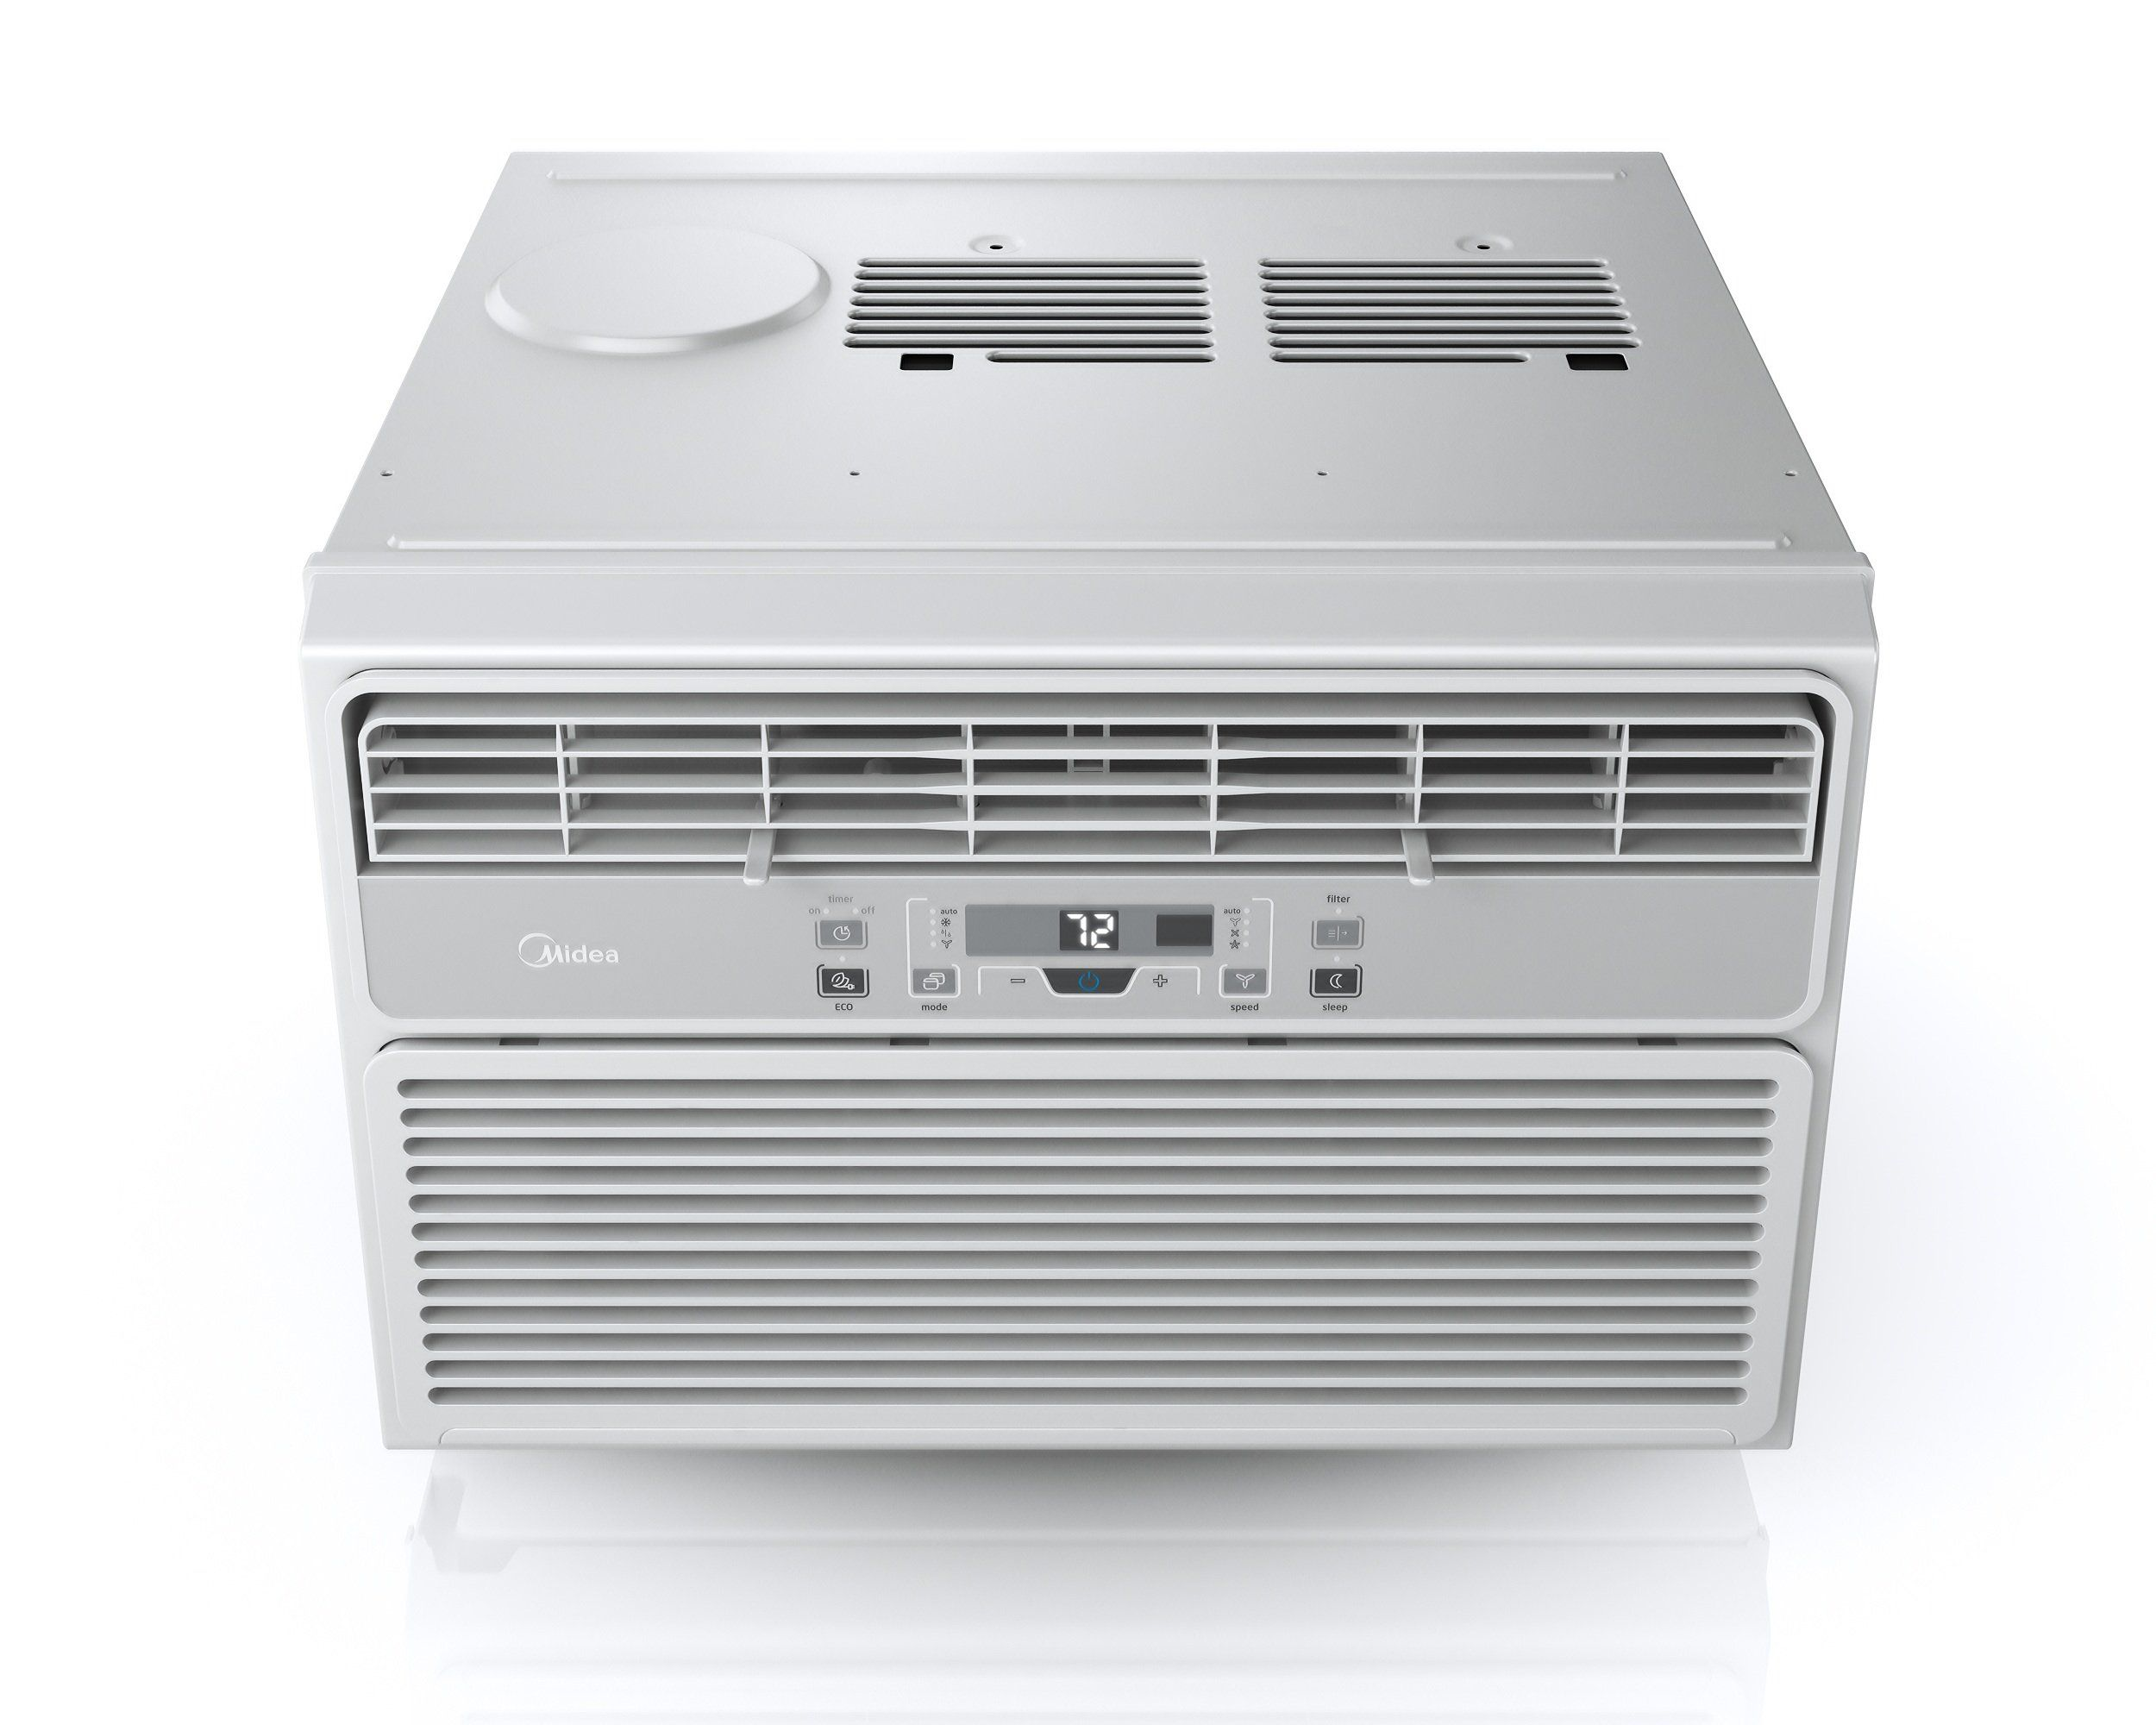 Midea Easycool Window Air Conditioner And Dehumidifier With Timer12000btu Read More R Window Air Conditioner Air Conditioner Casement Window Air Conditioner